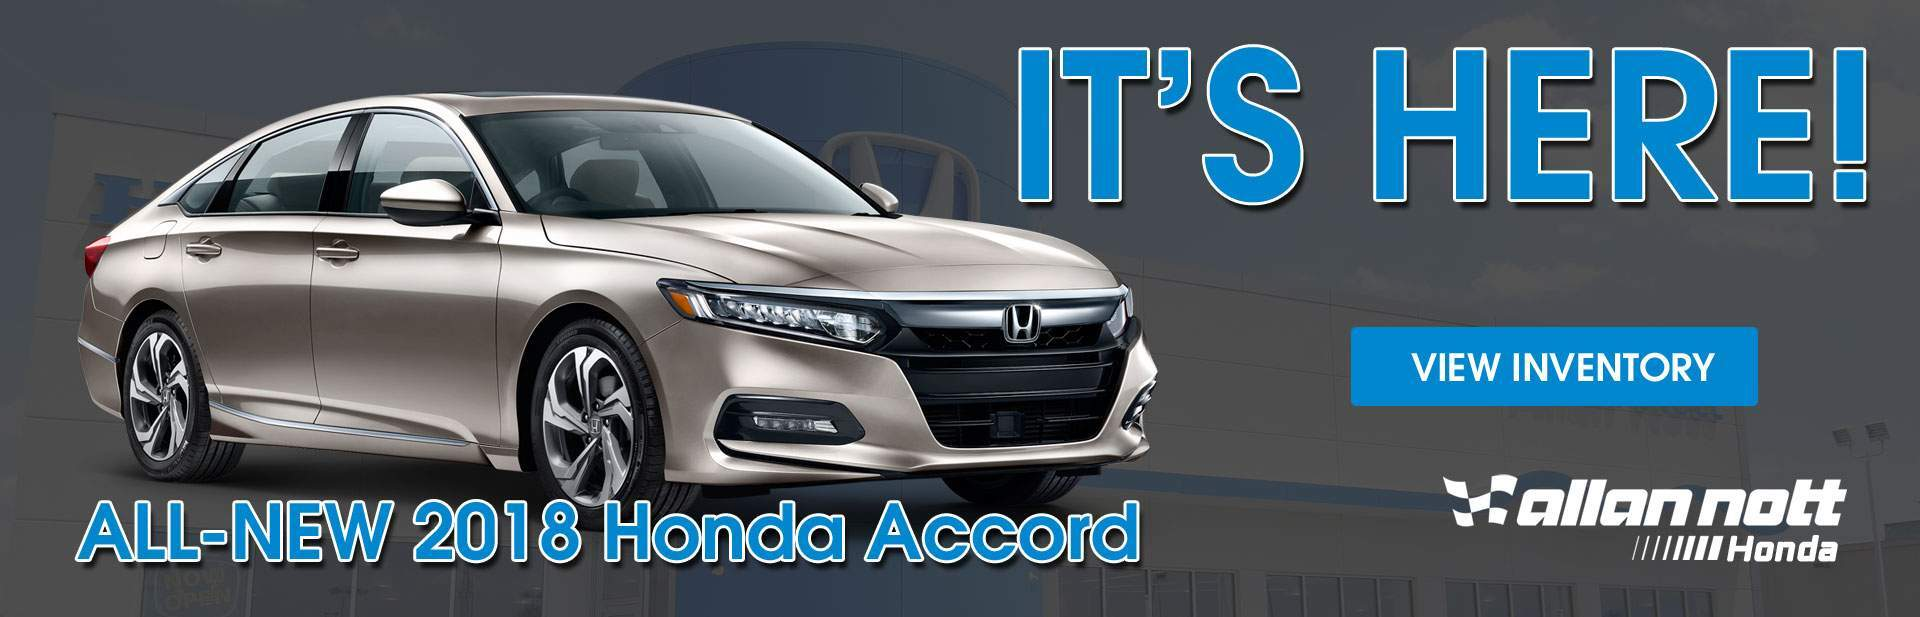 The ALL-NEW 2018 Honda Accord is here at Allan Nott Honda!